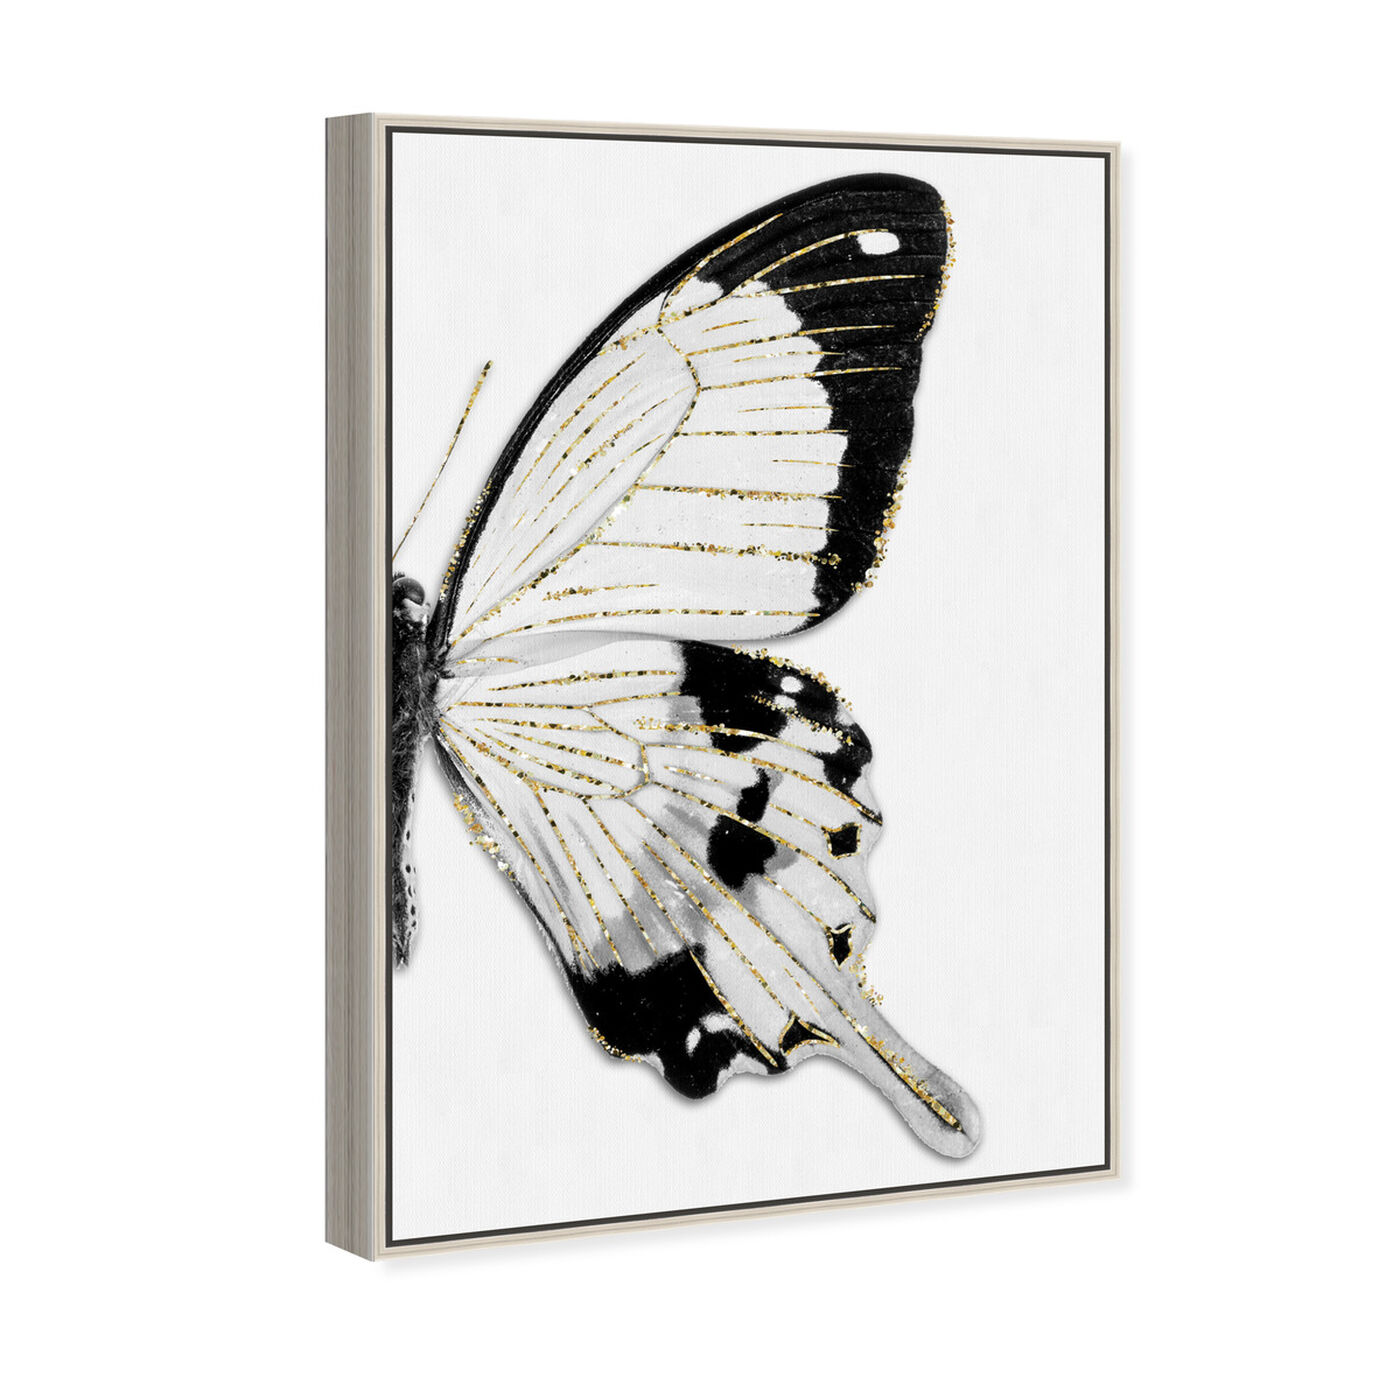 Angled view of Monochrome Glitter Butterfly I featuring animals and insects art.